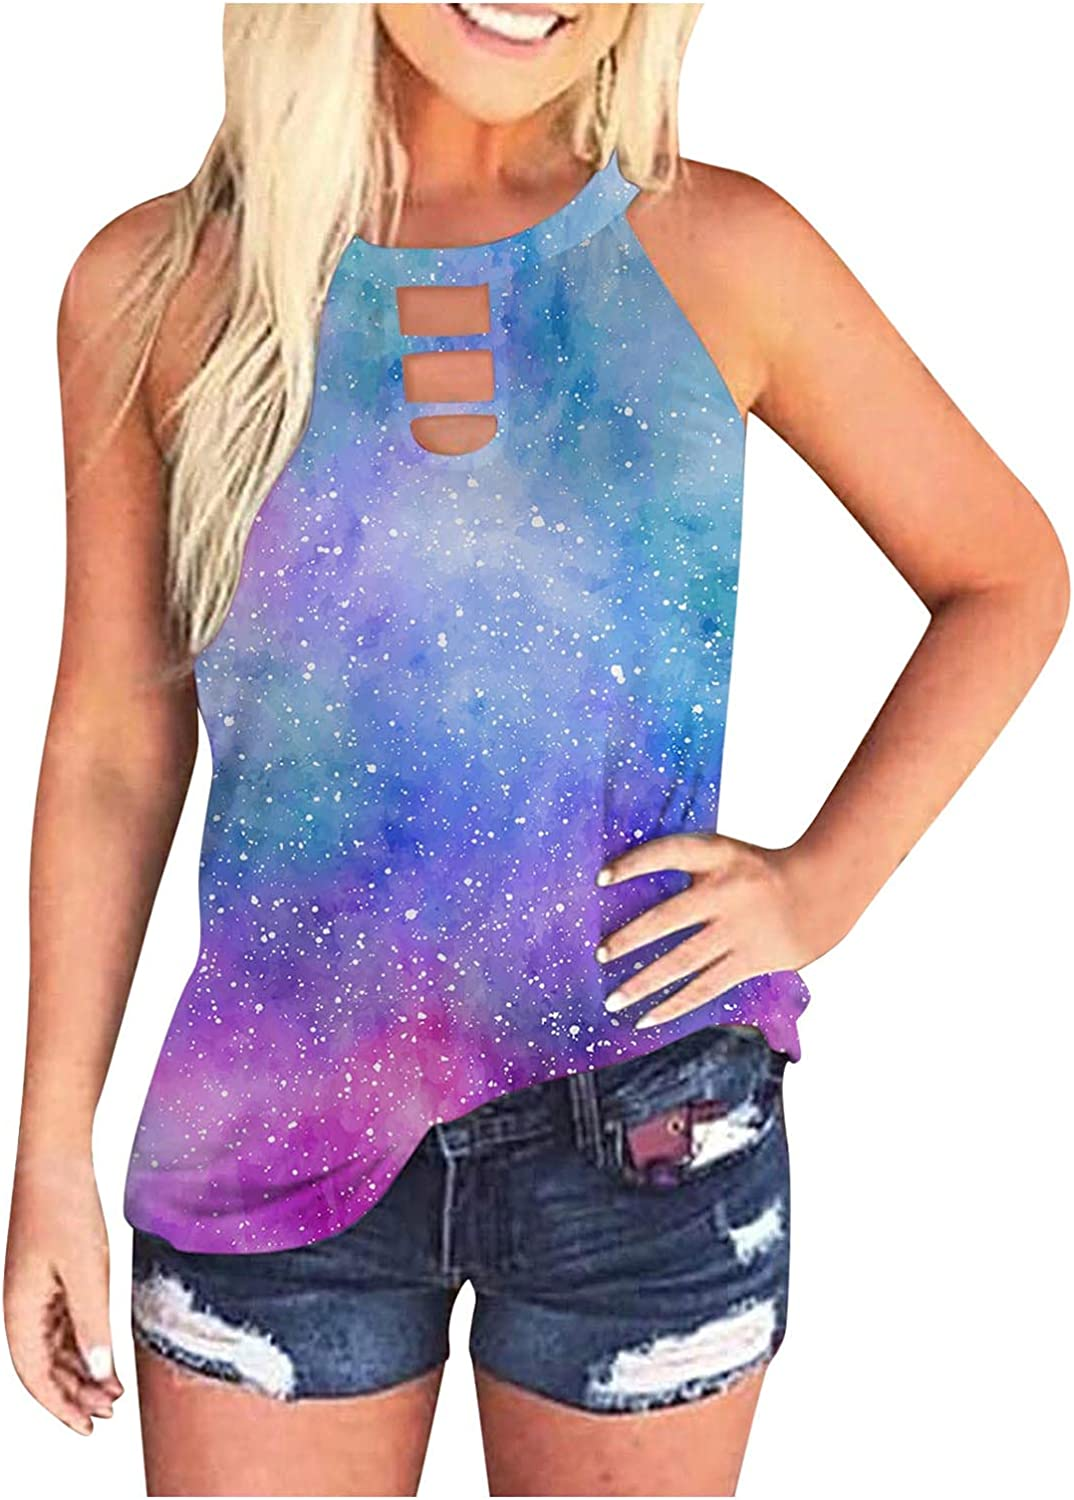 AODONG Tank Tops for Women Casual, Womens Sleeveless Summer Loose Fit Tie-Dye Tops Tunics Blouses Tee Shirts Vest